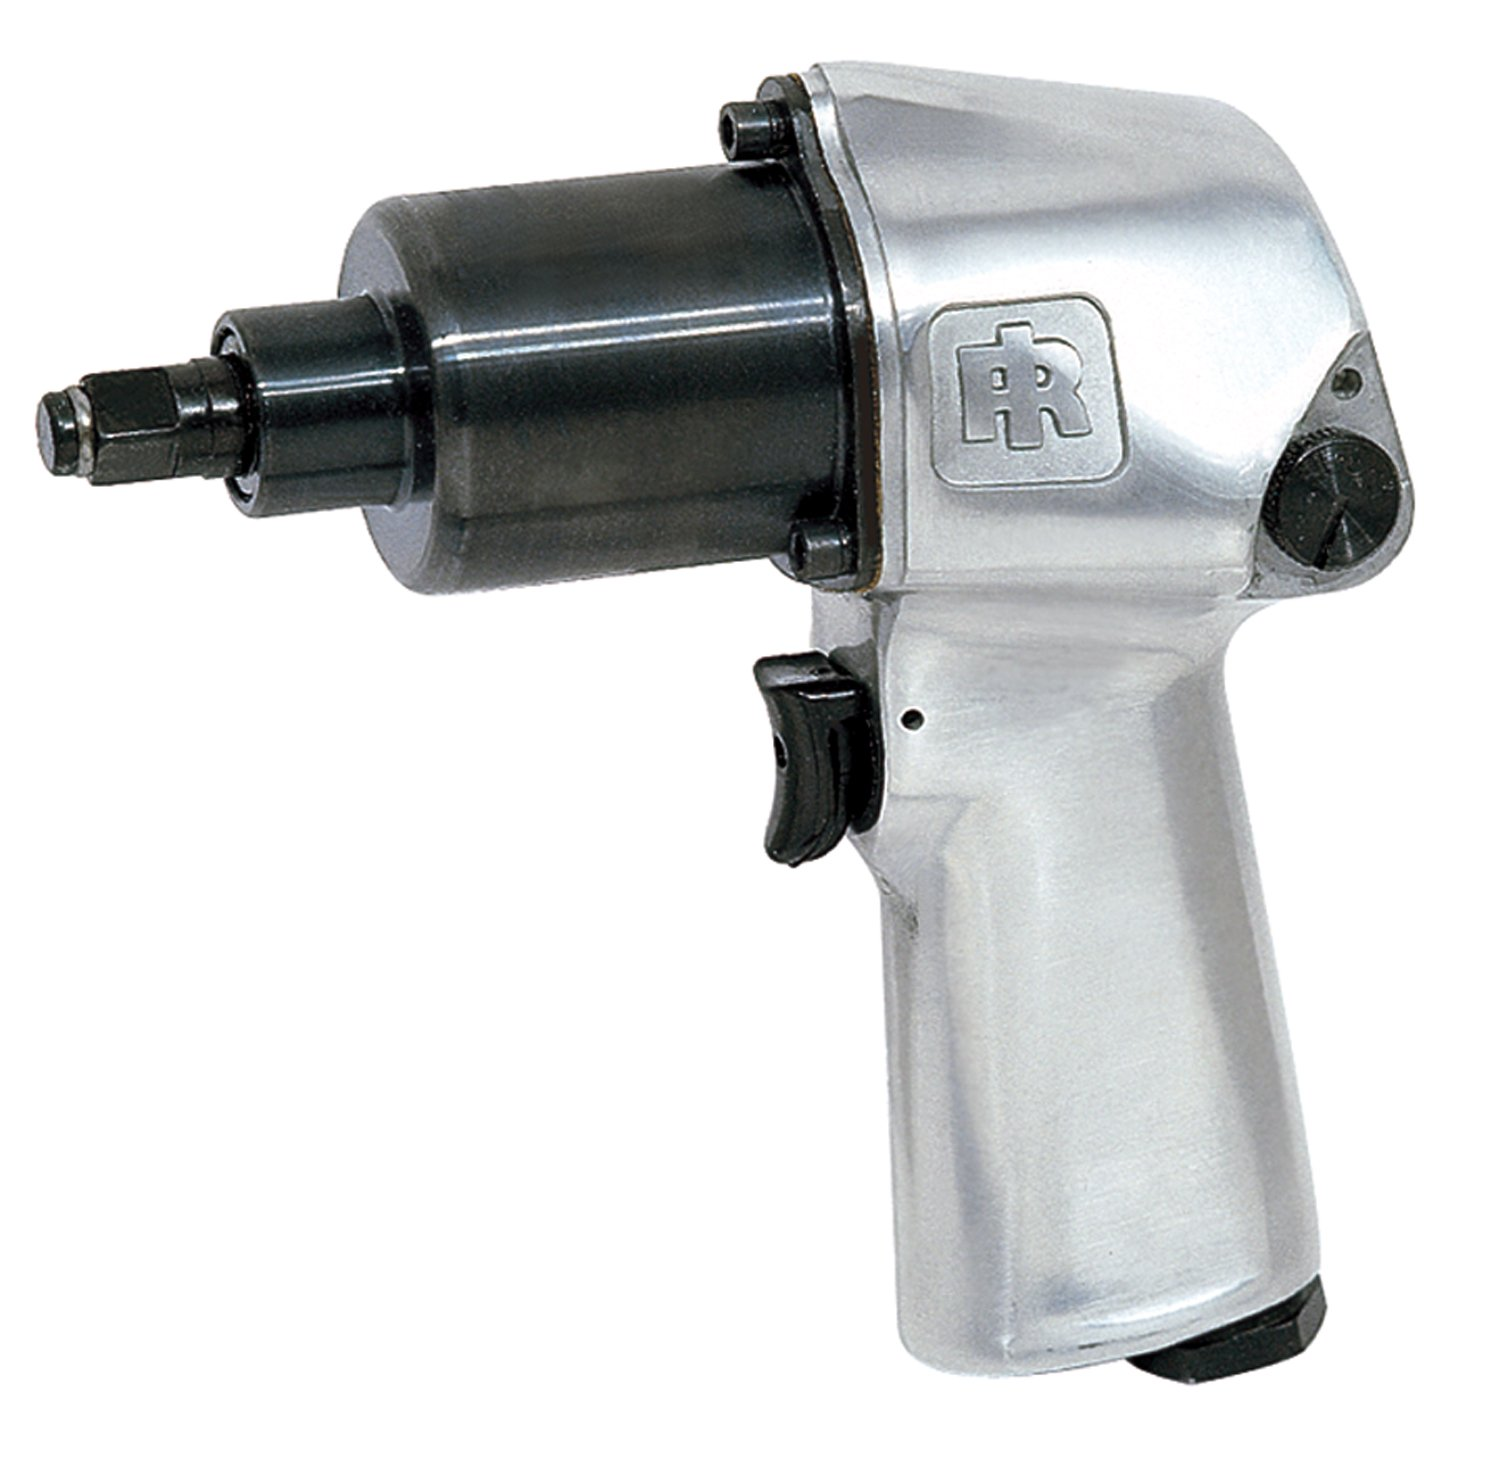 Ingersoll 212 8 Inch Impact Wrench